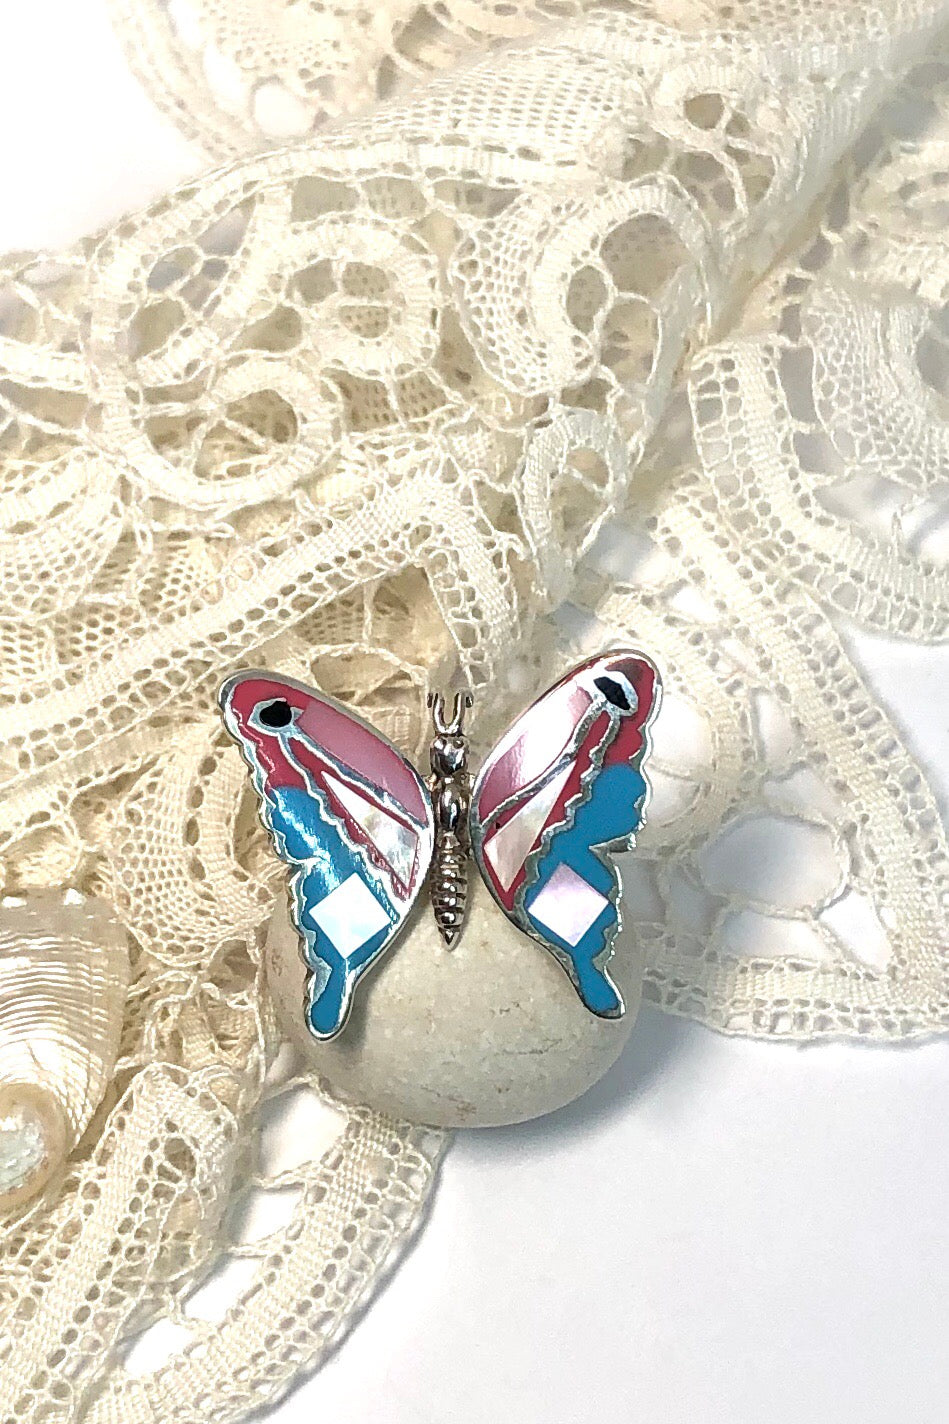 A really pretty pink and blue butterfly ring with luminescent Mother of Pearl featuring 925 silver setting and ring band.